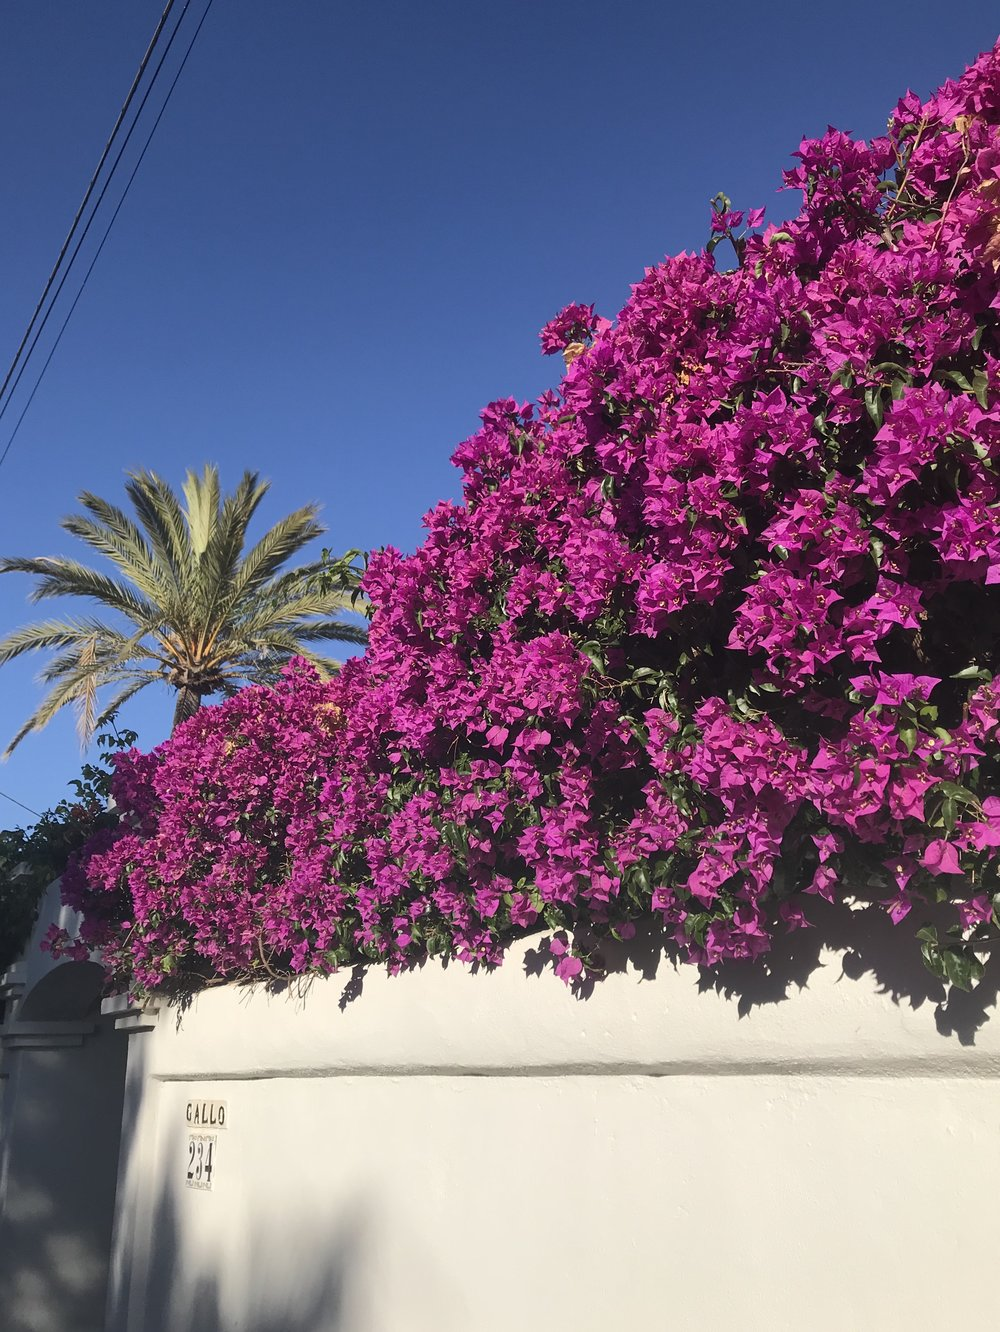 Trip to Marbella in Spain to soak up all the colour and pattern inspiration.